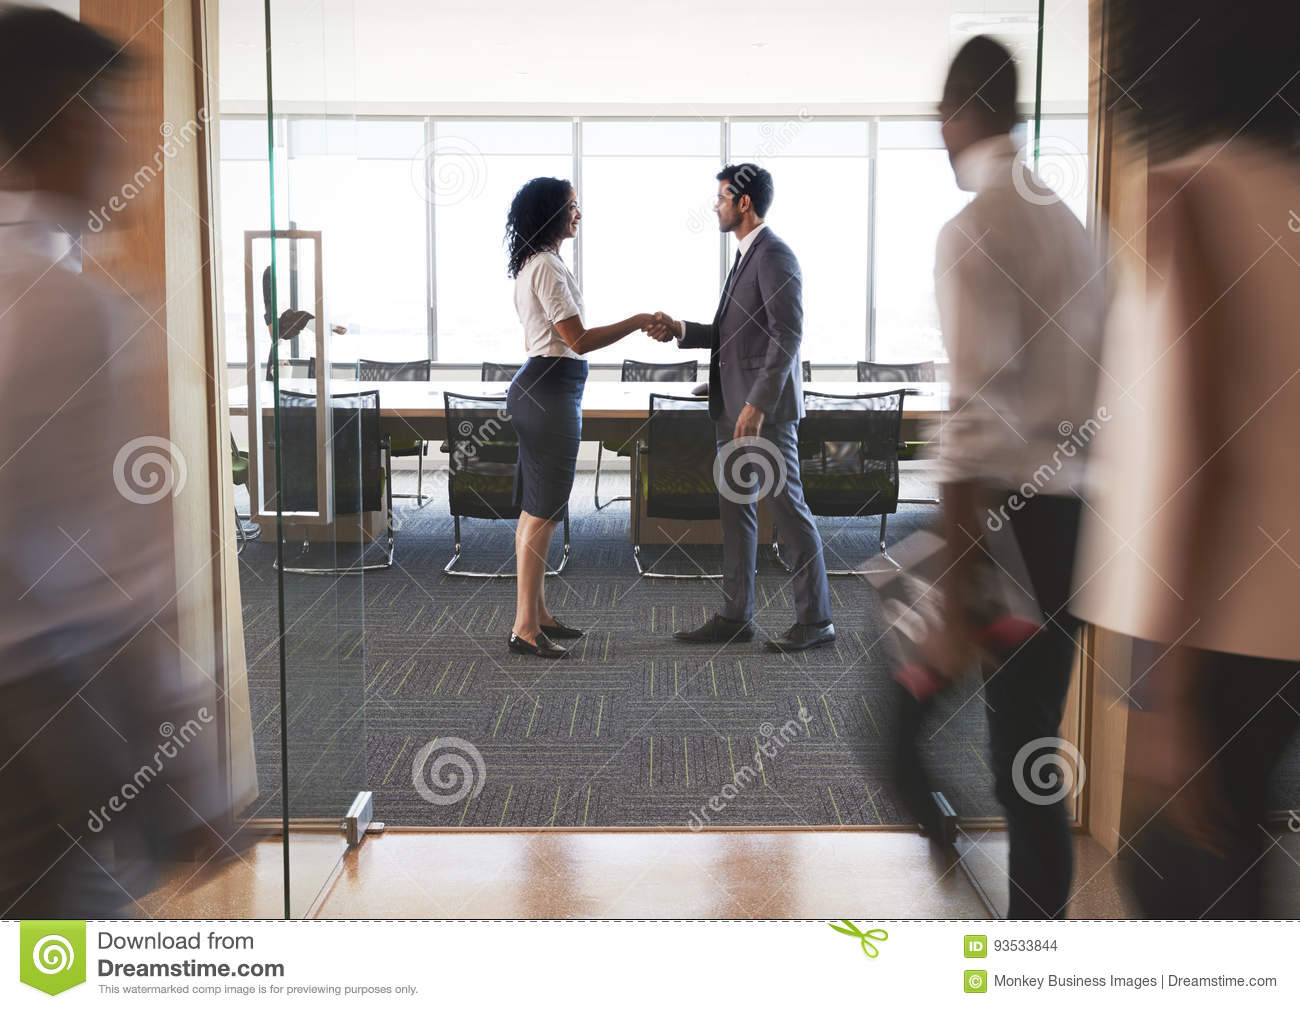 Businesspeople Shaking Hands In Entrance To Boardroom